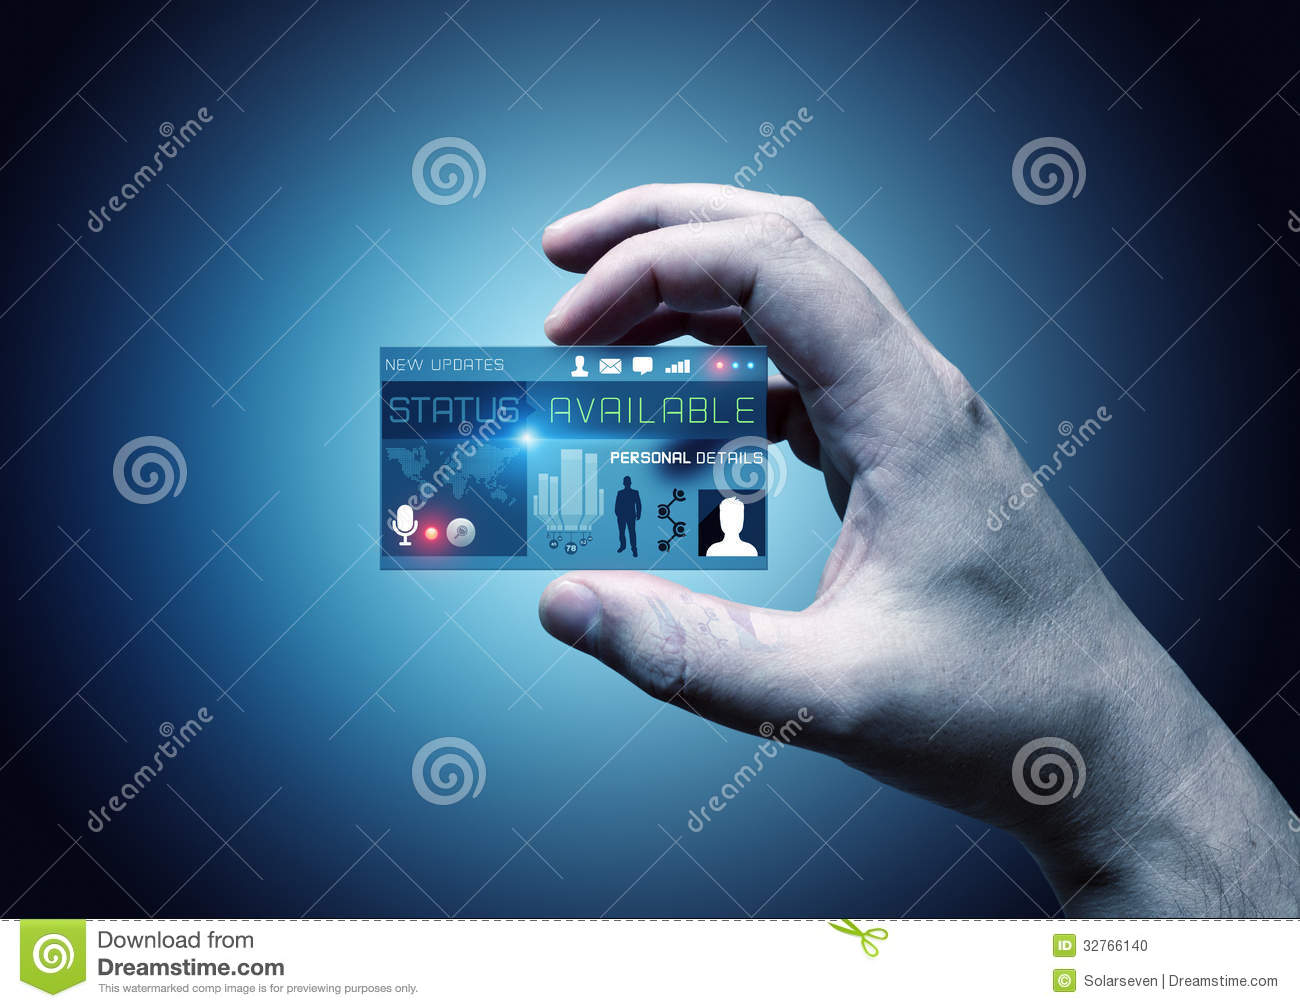 Digital Business Card Stock Photo - Image: 32766140: www.dreamstime.com/stock-photo-digital-business-card-hand-holding...